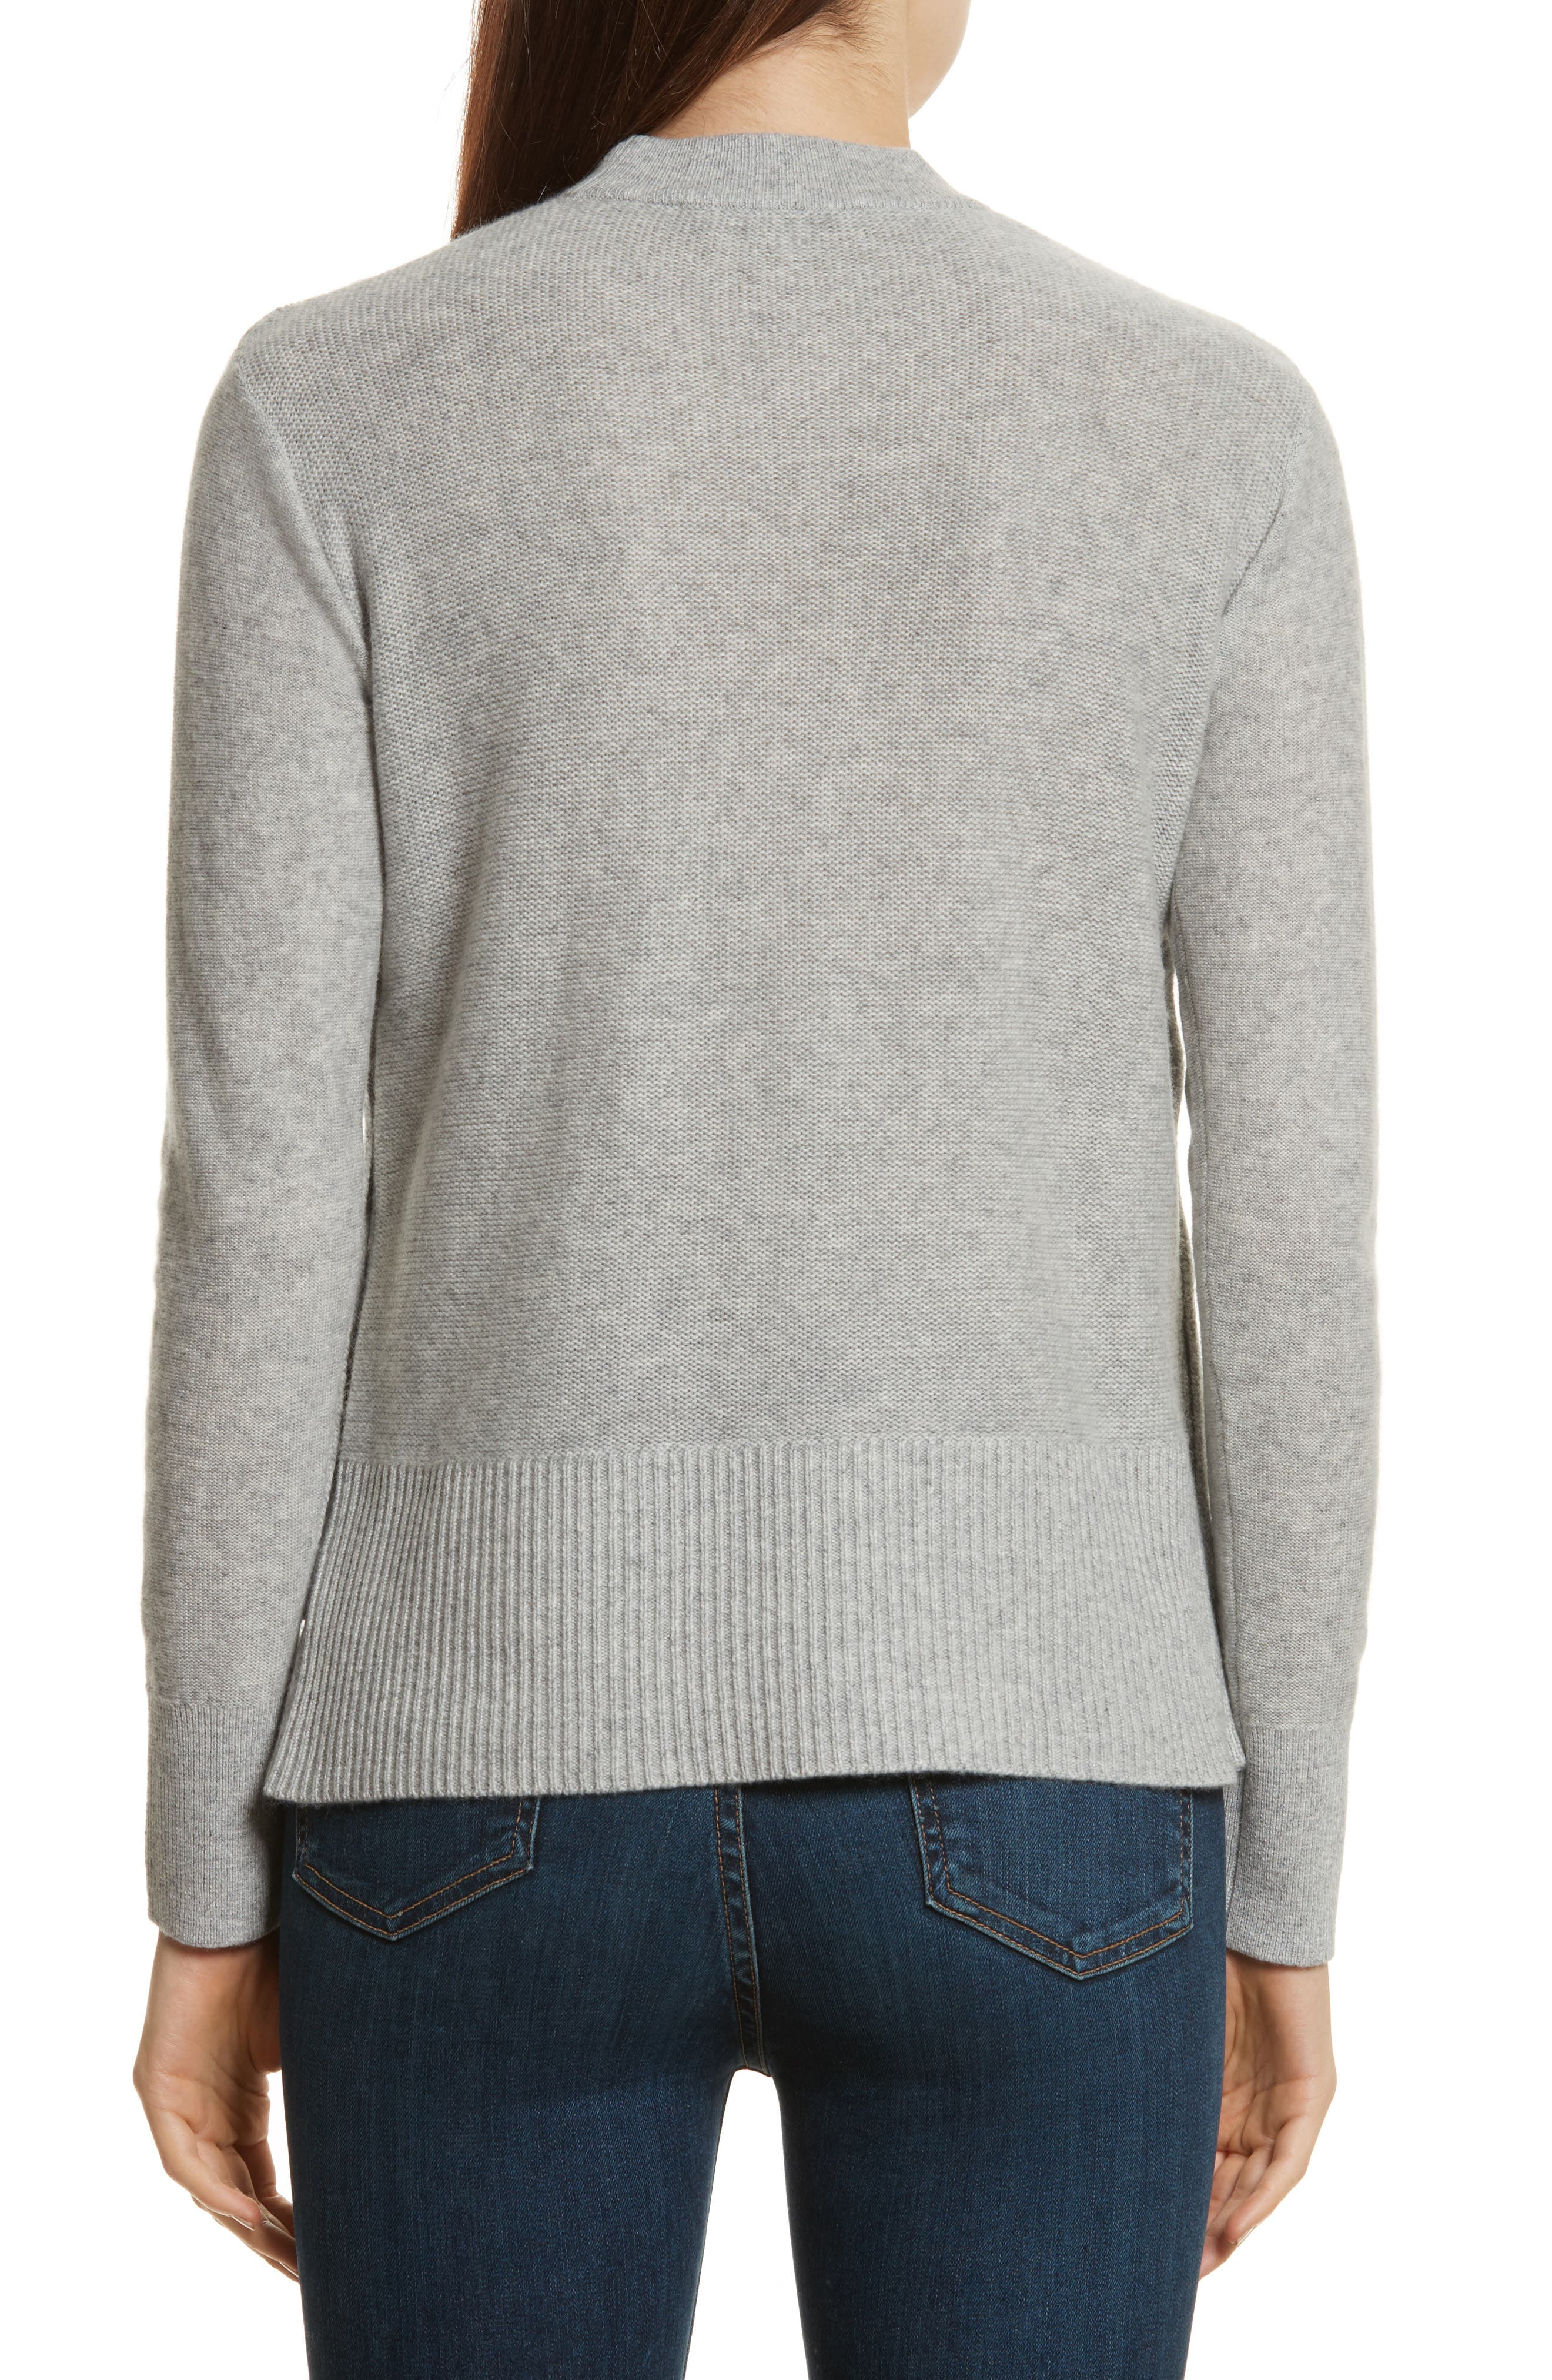 Kenna Cashmere Sweater,                             Alternate thumbnail 2, color,                             Grey